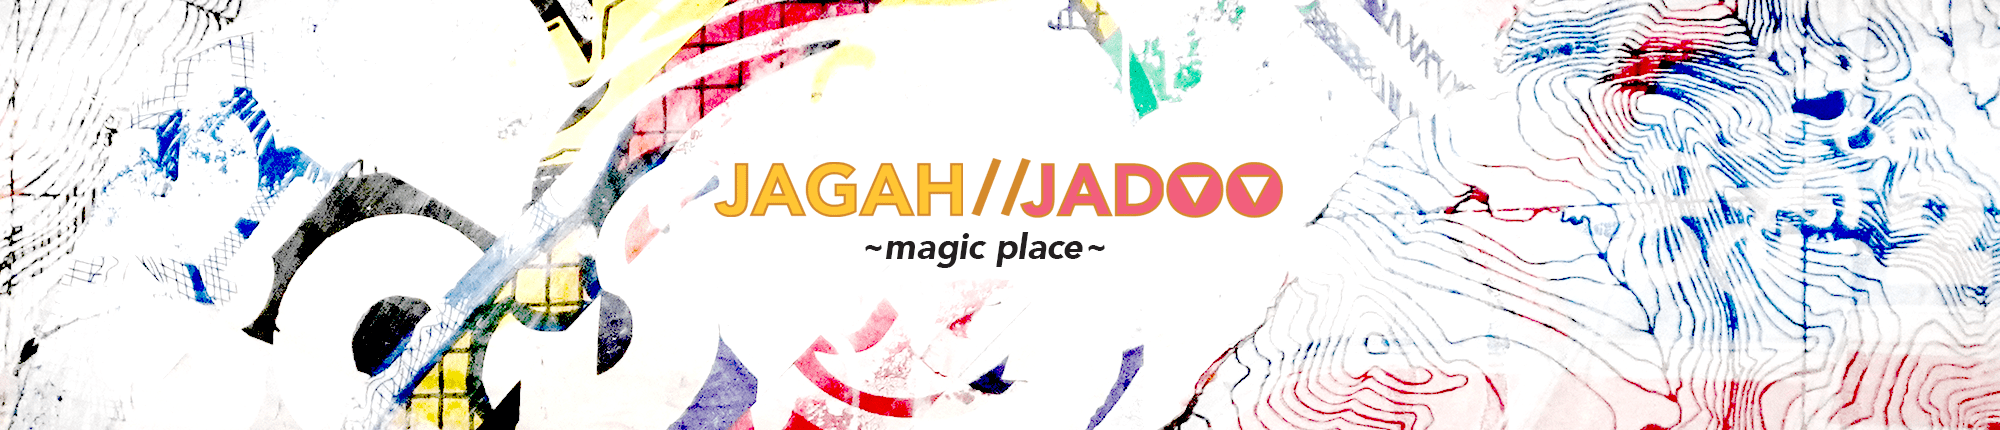 Jagah Jaddo: Magic Place